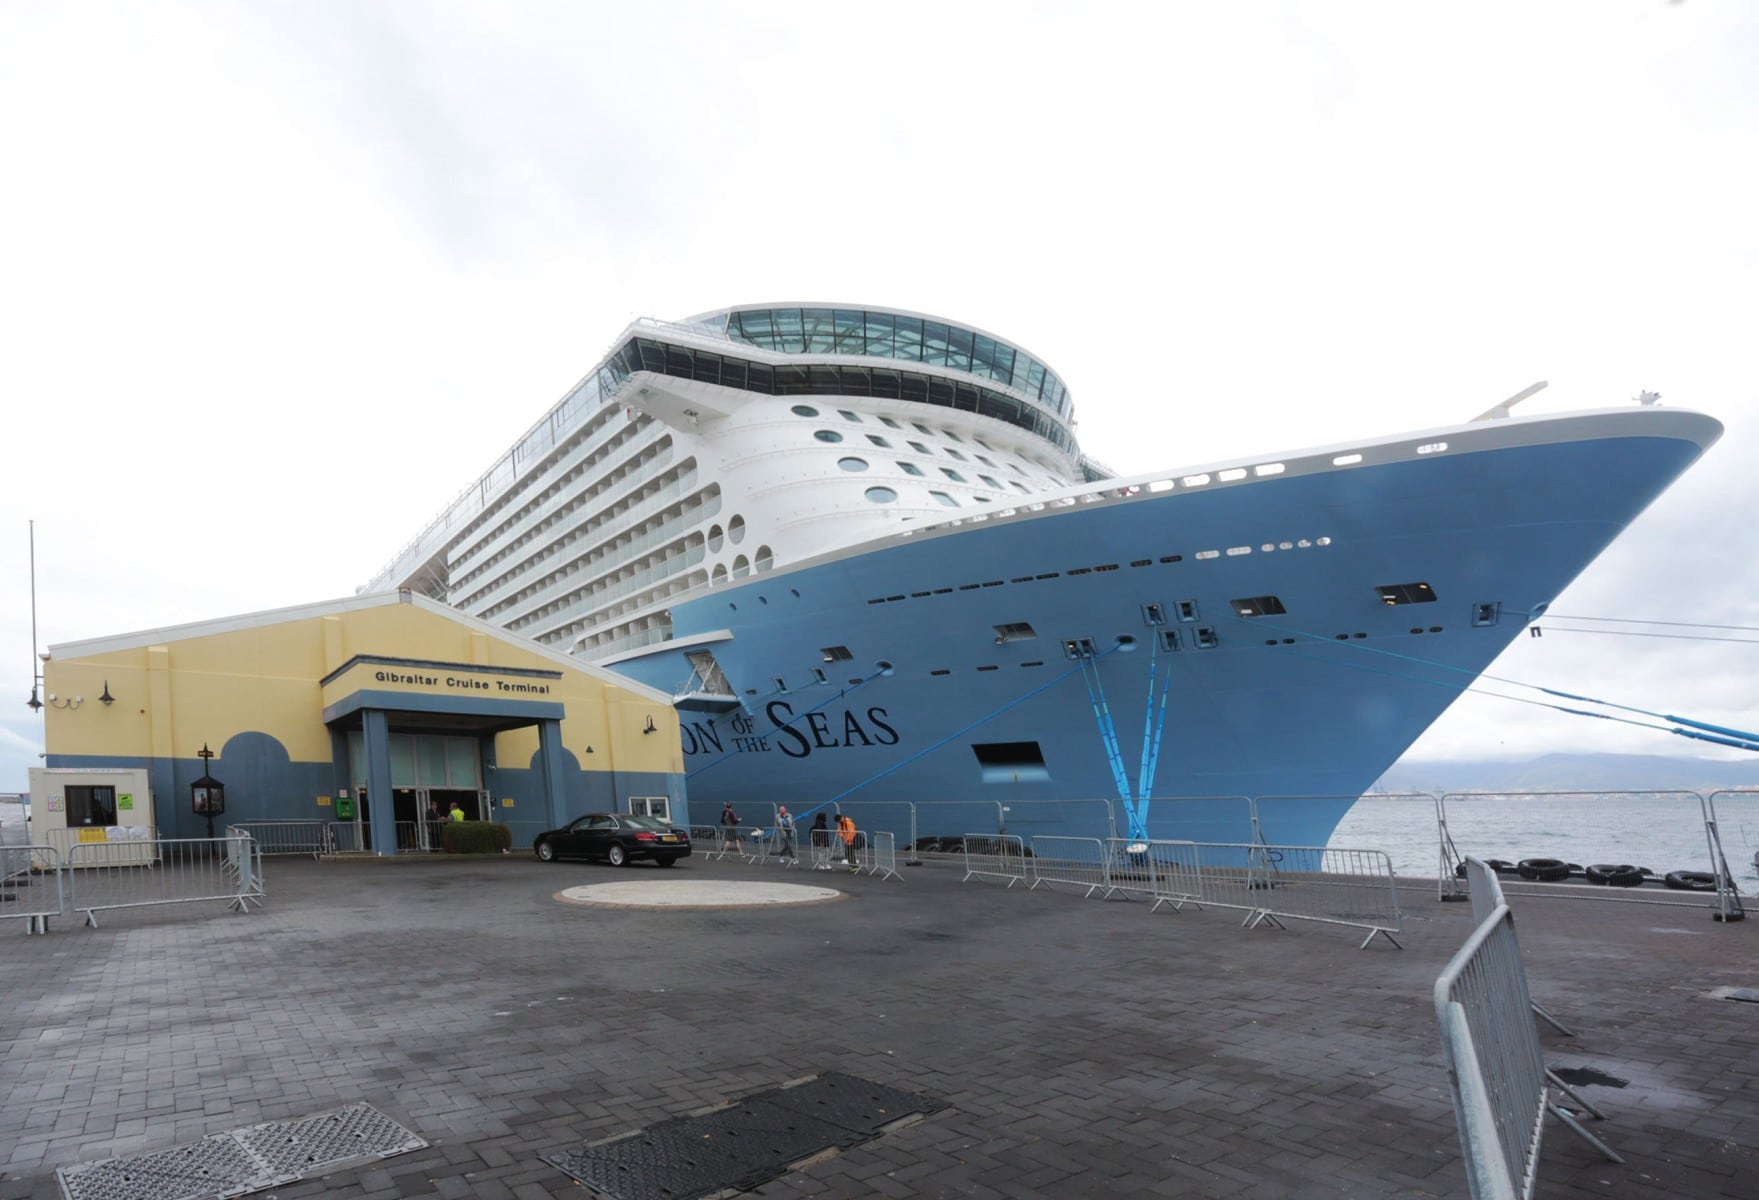 Escala-inaugural-del-crucero-Ovation-of-the-Seas-71